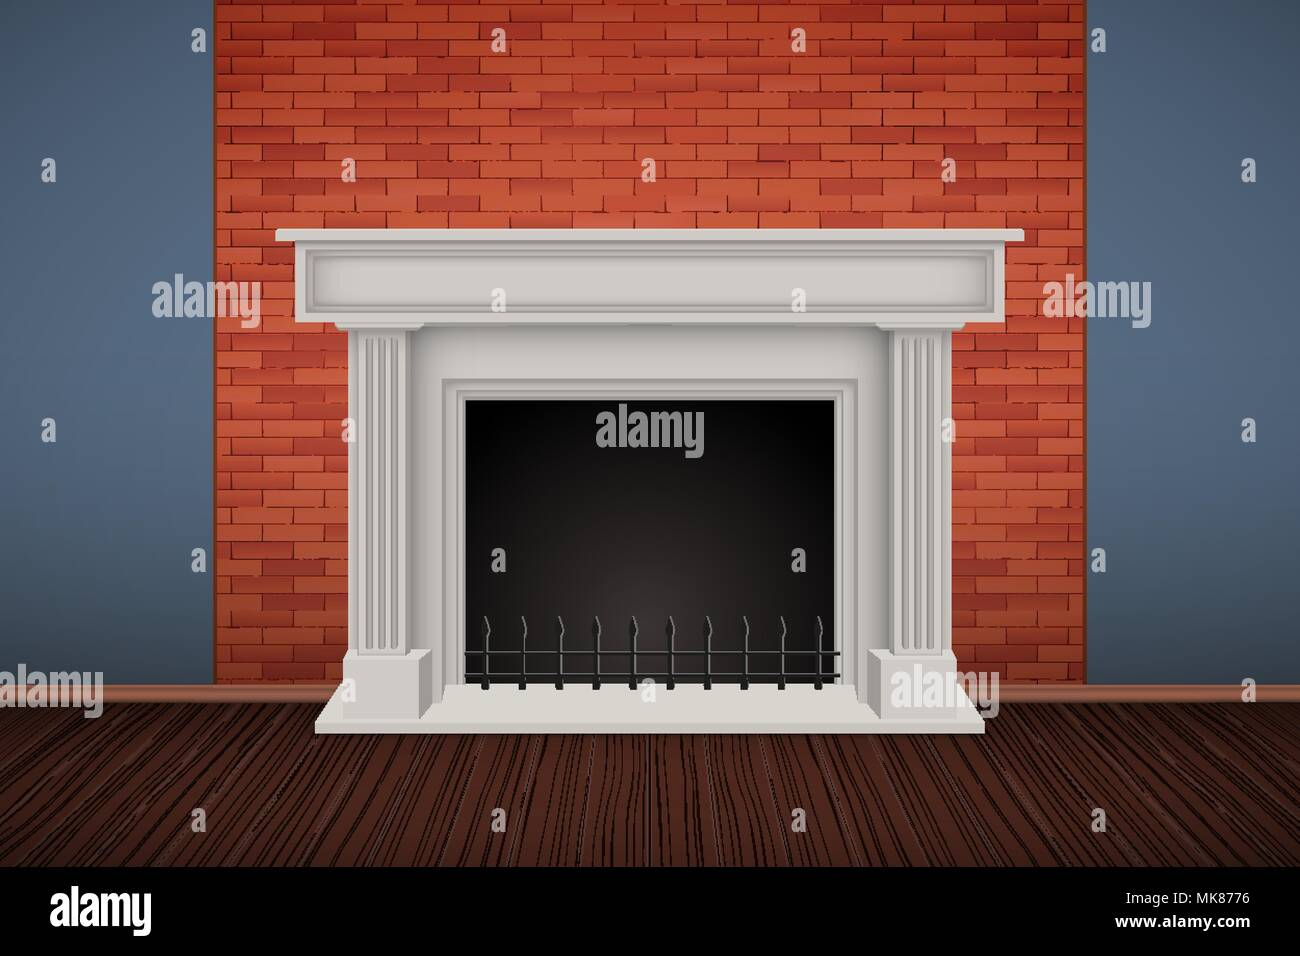 Interior Of Red Brick Wall With Fireplace And Wooden Floor Vintage